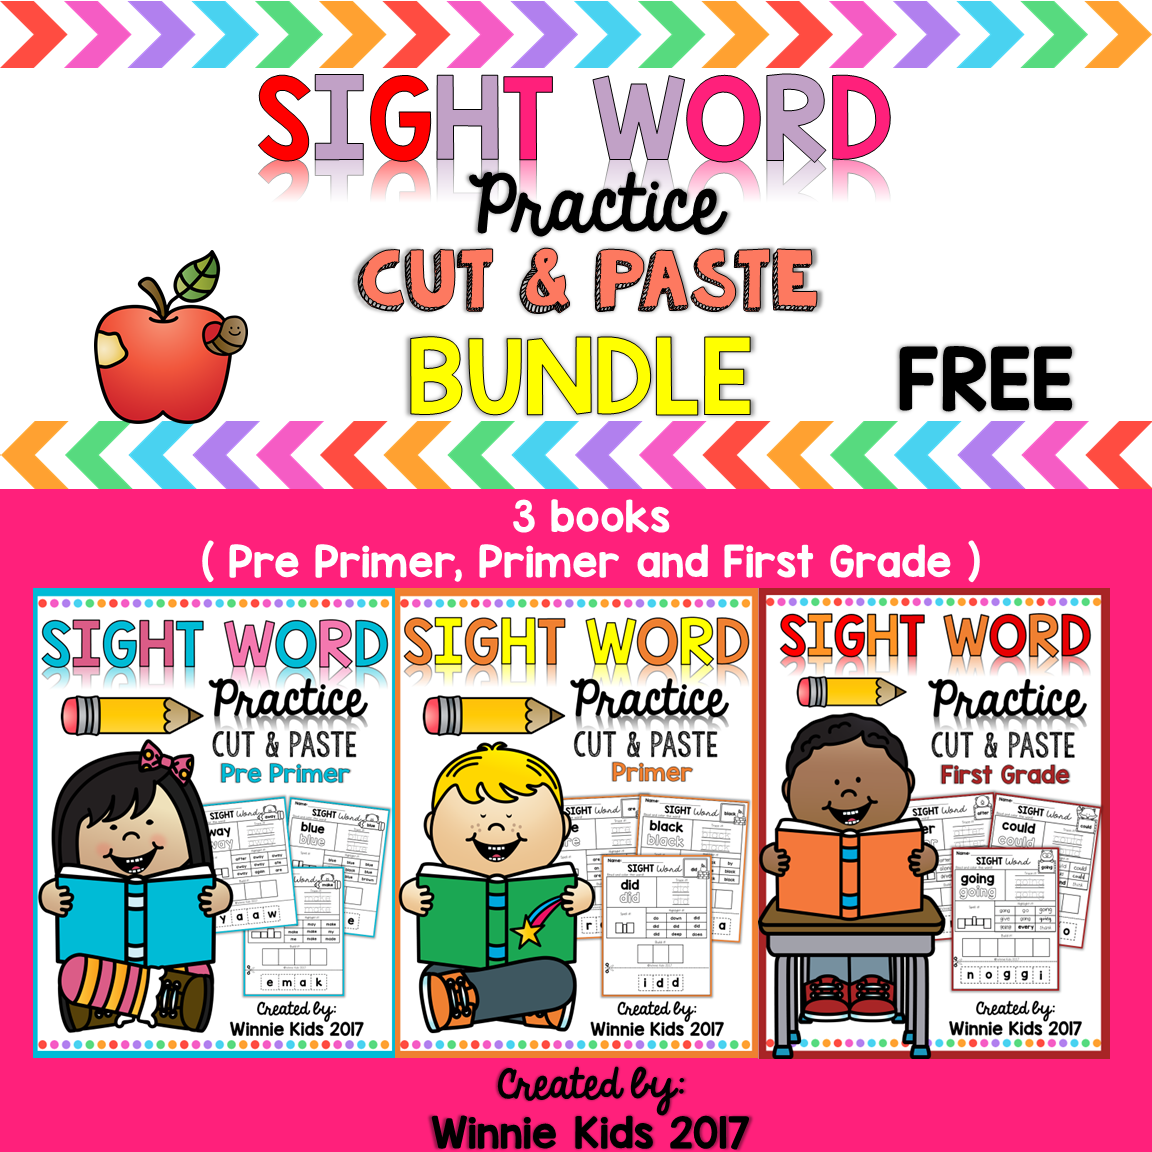 FREE 10 PAGES!!! Sight Word Practice Cut and Paste - Bundle will ...